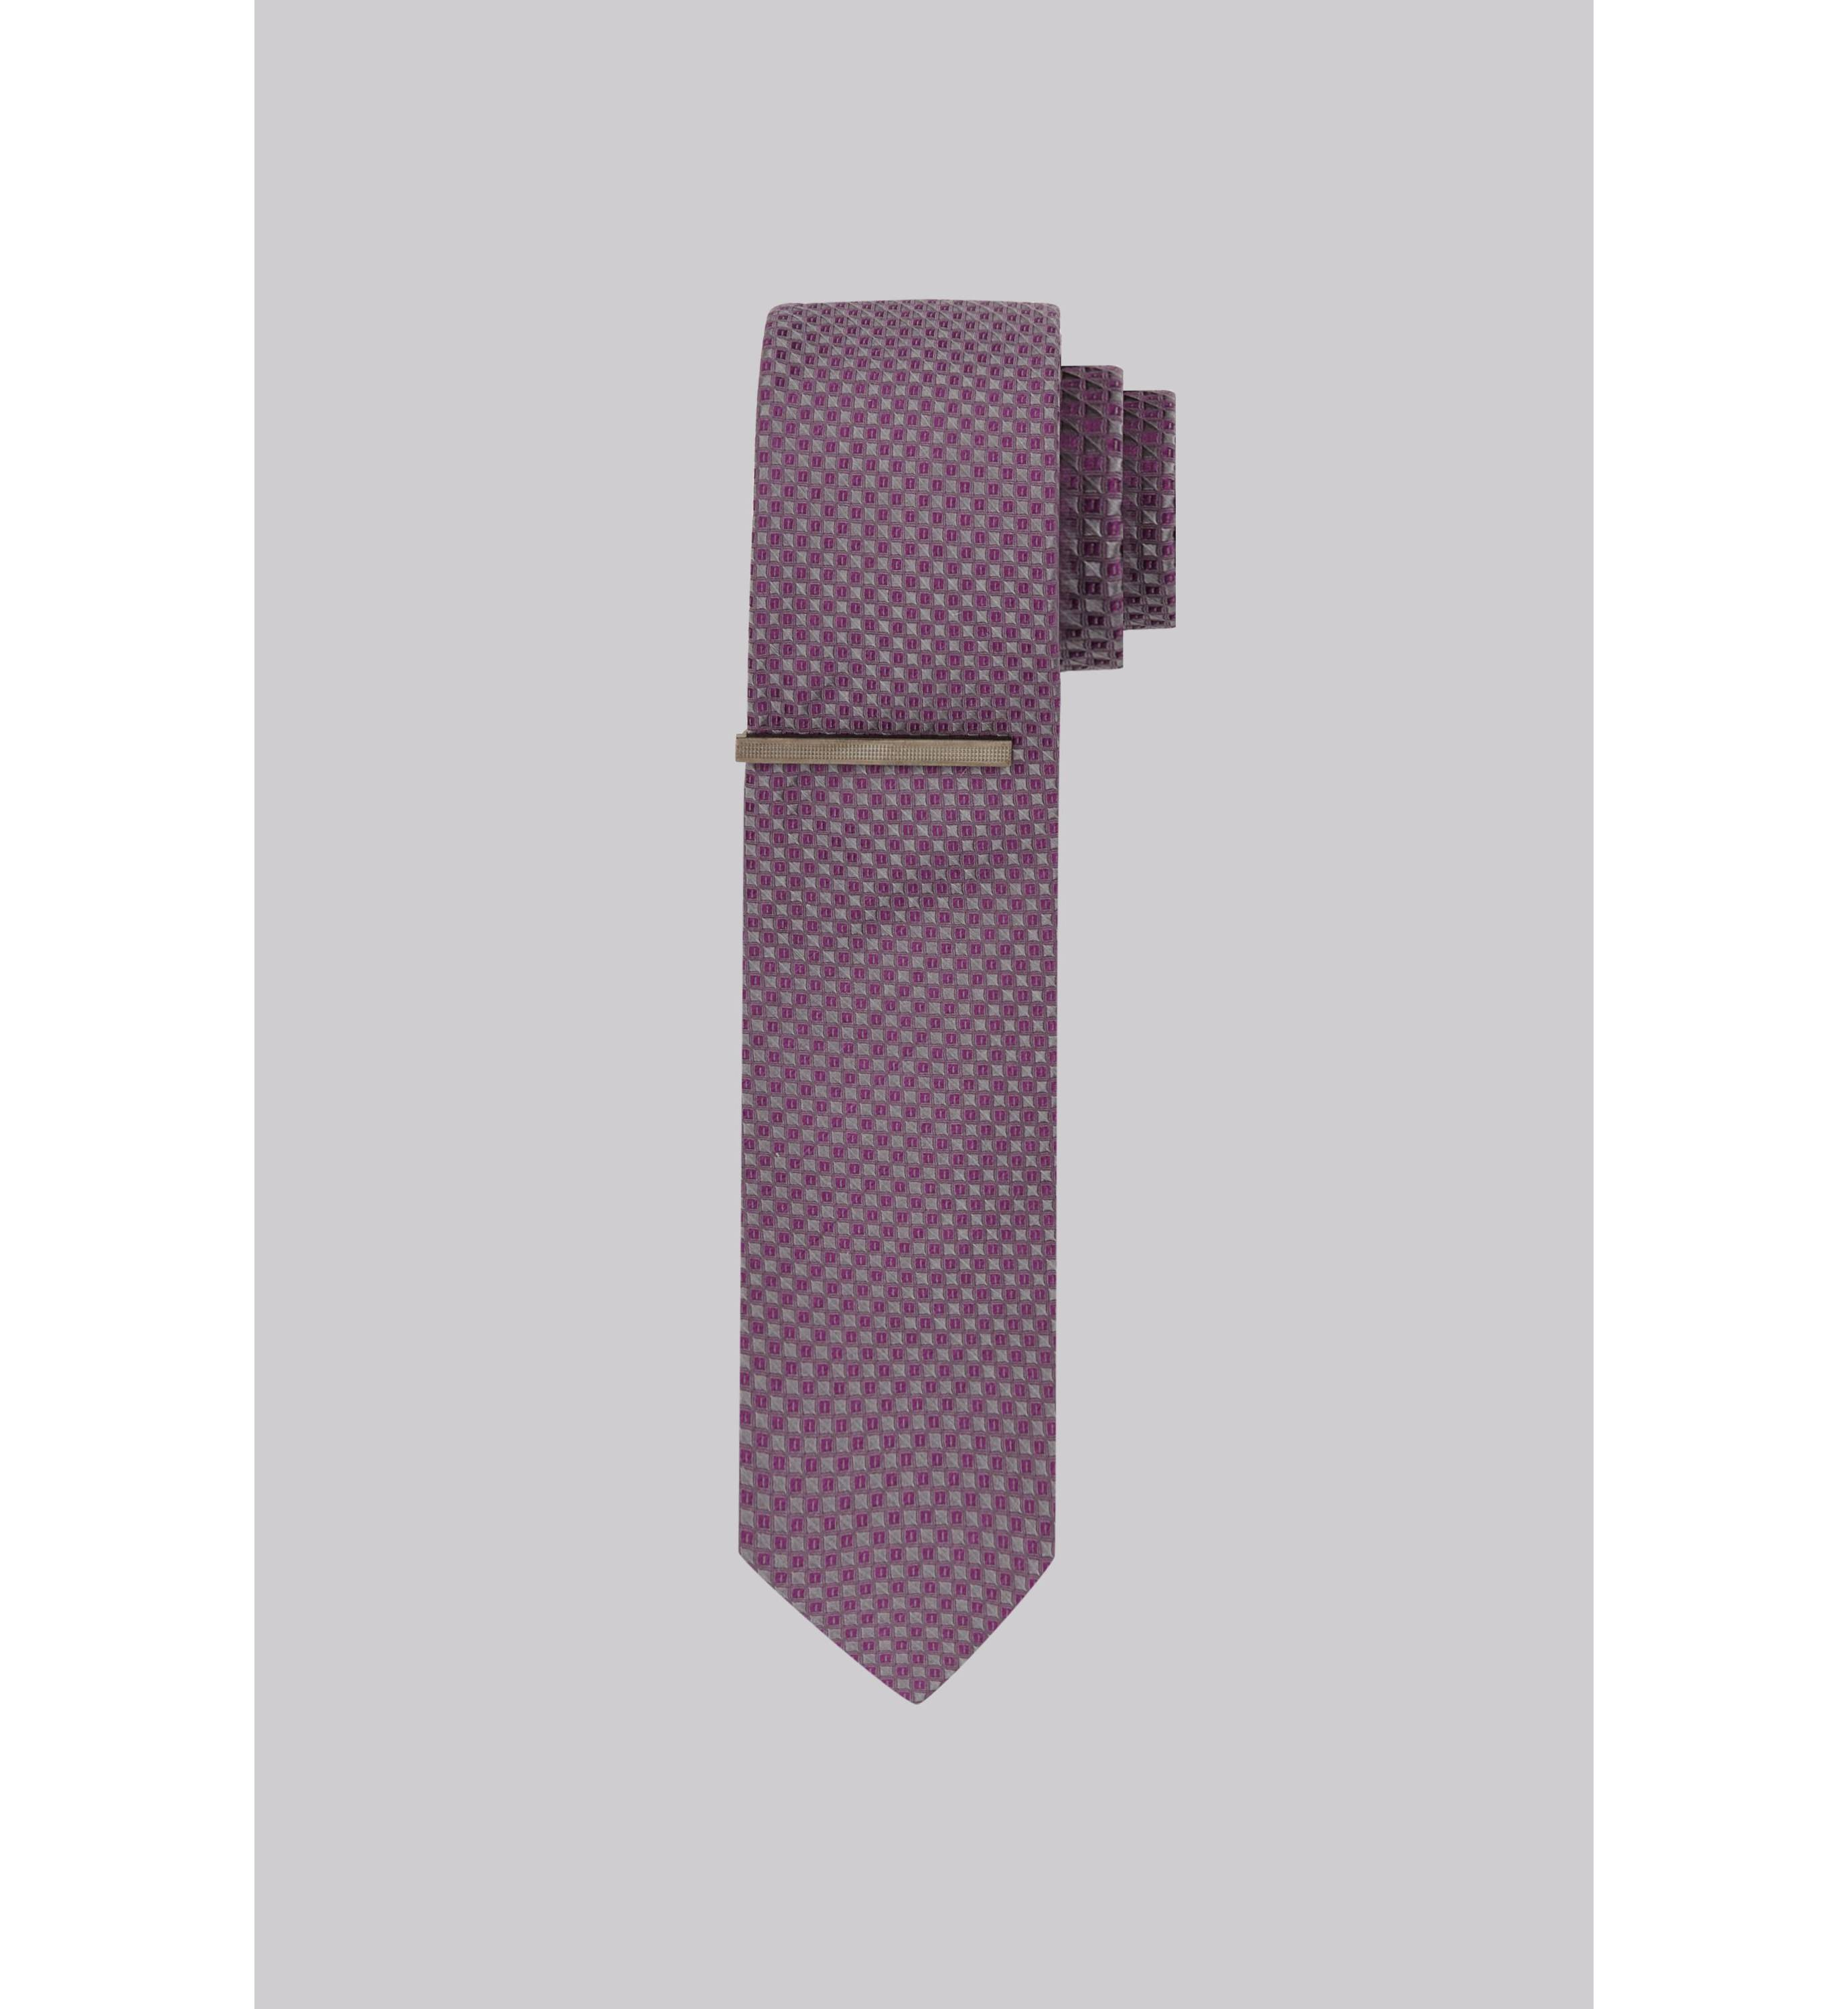 Dkny Grey And Pink Texture Silk Tie With Tie Clip Only ₦